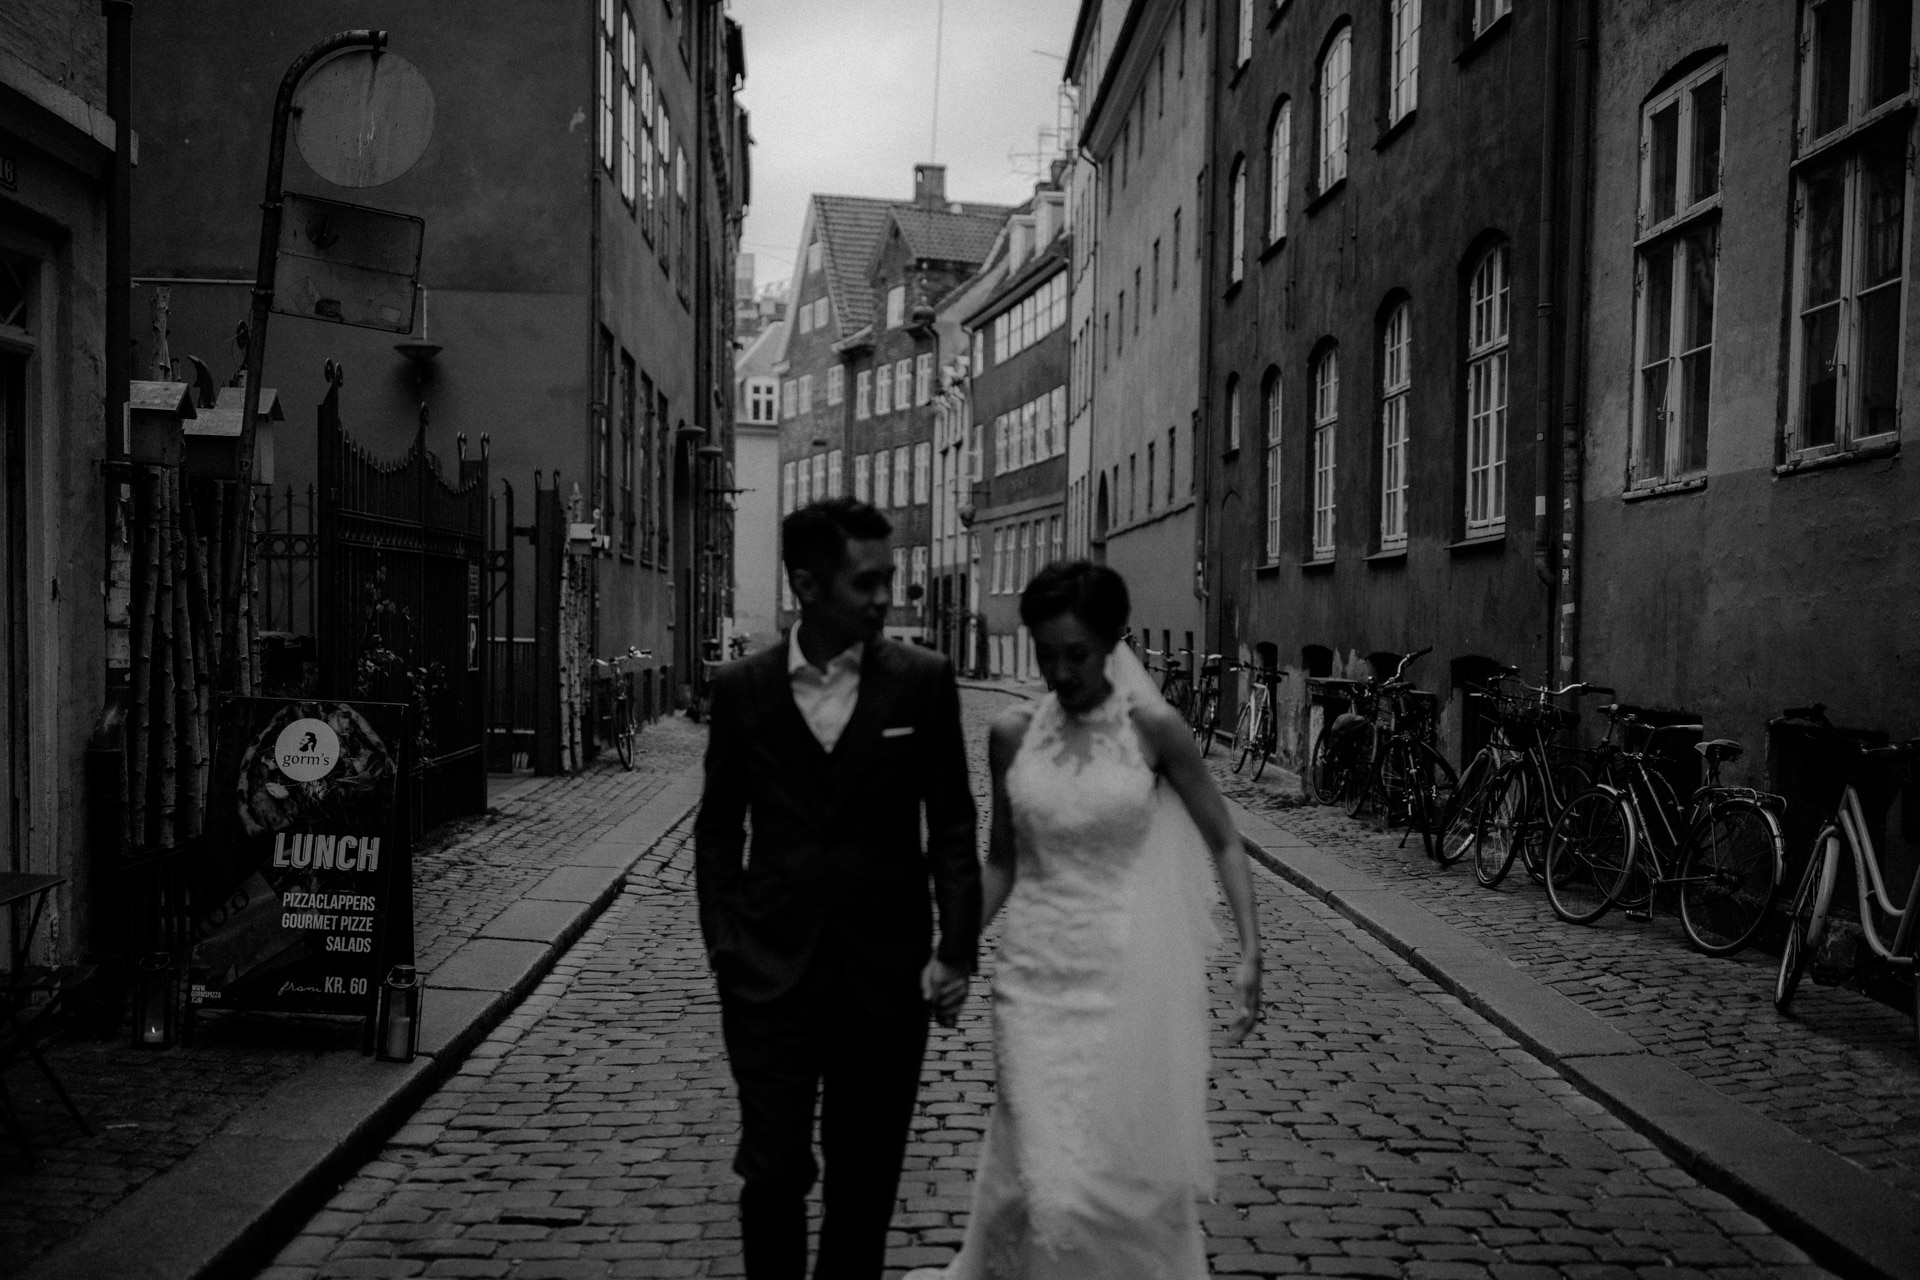 The wedding couple is walking through the streets of Copenhagen.